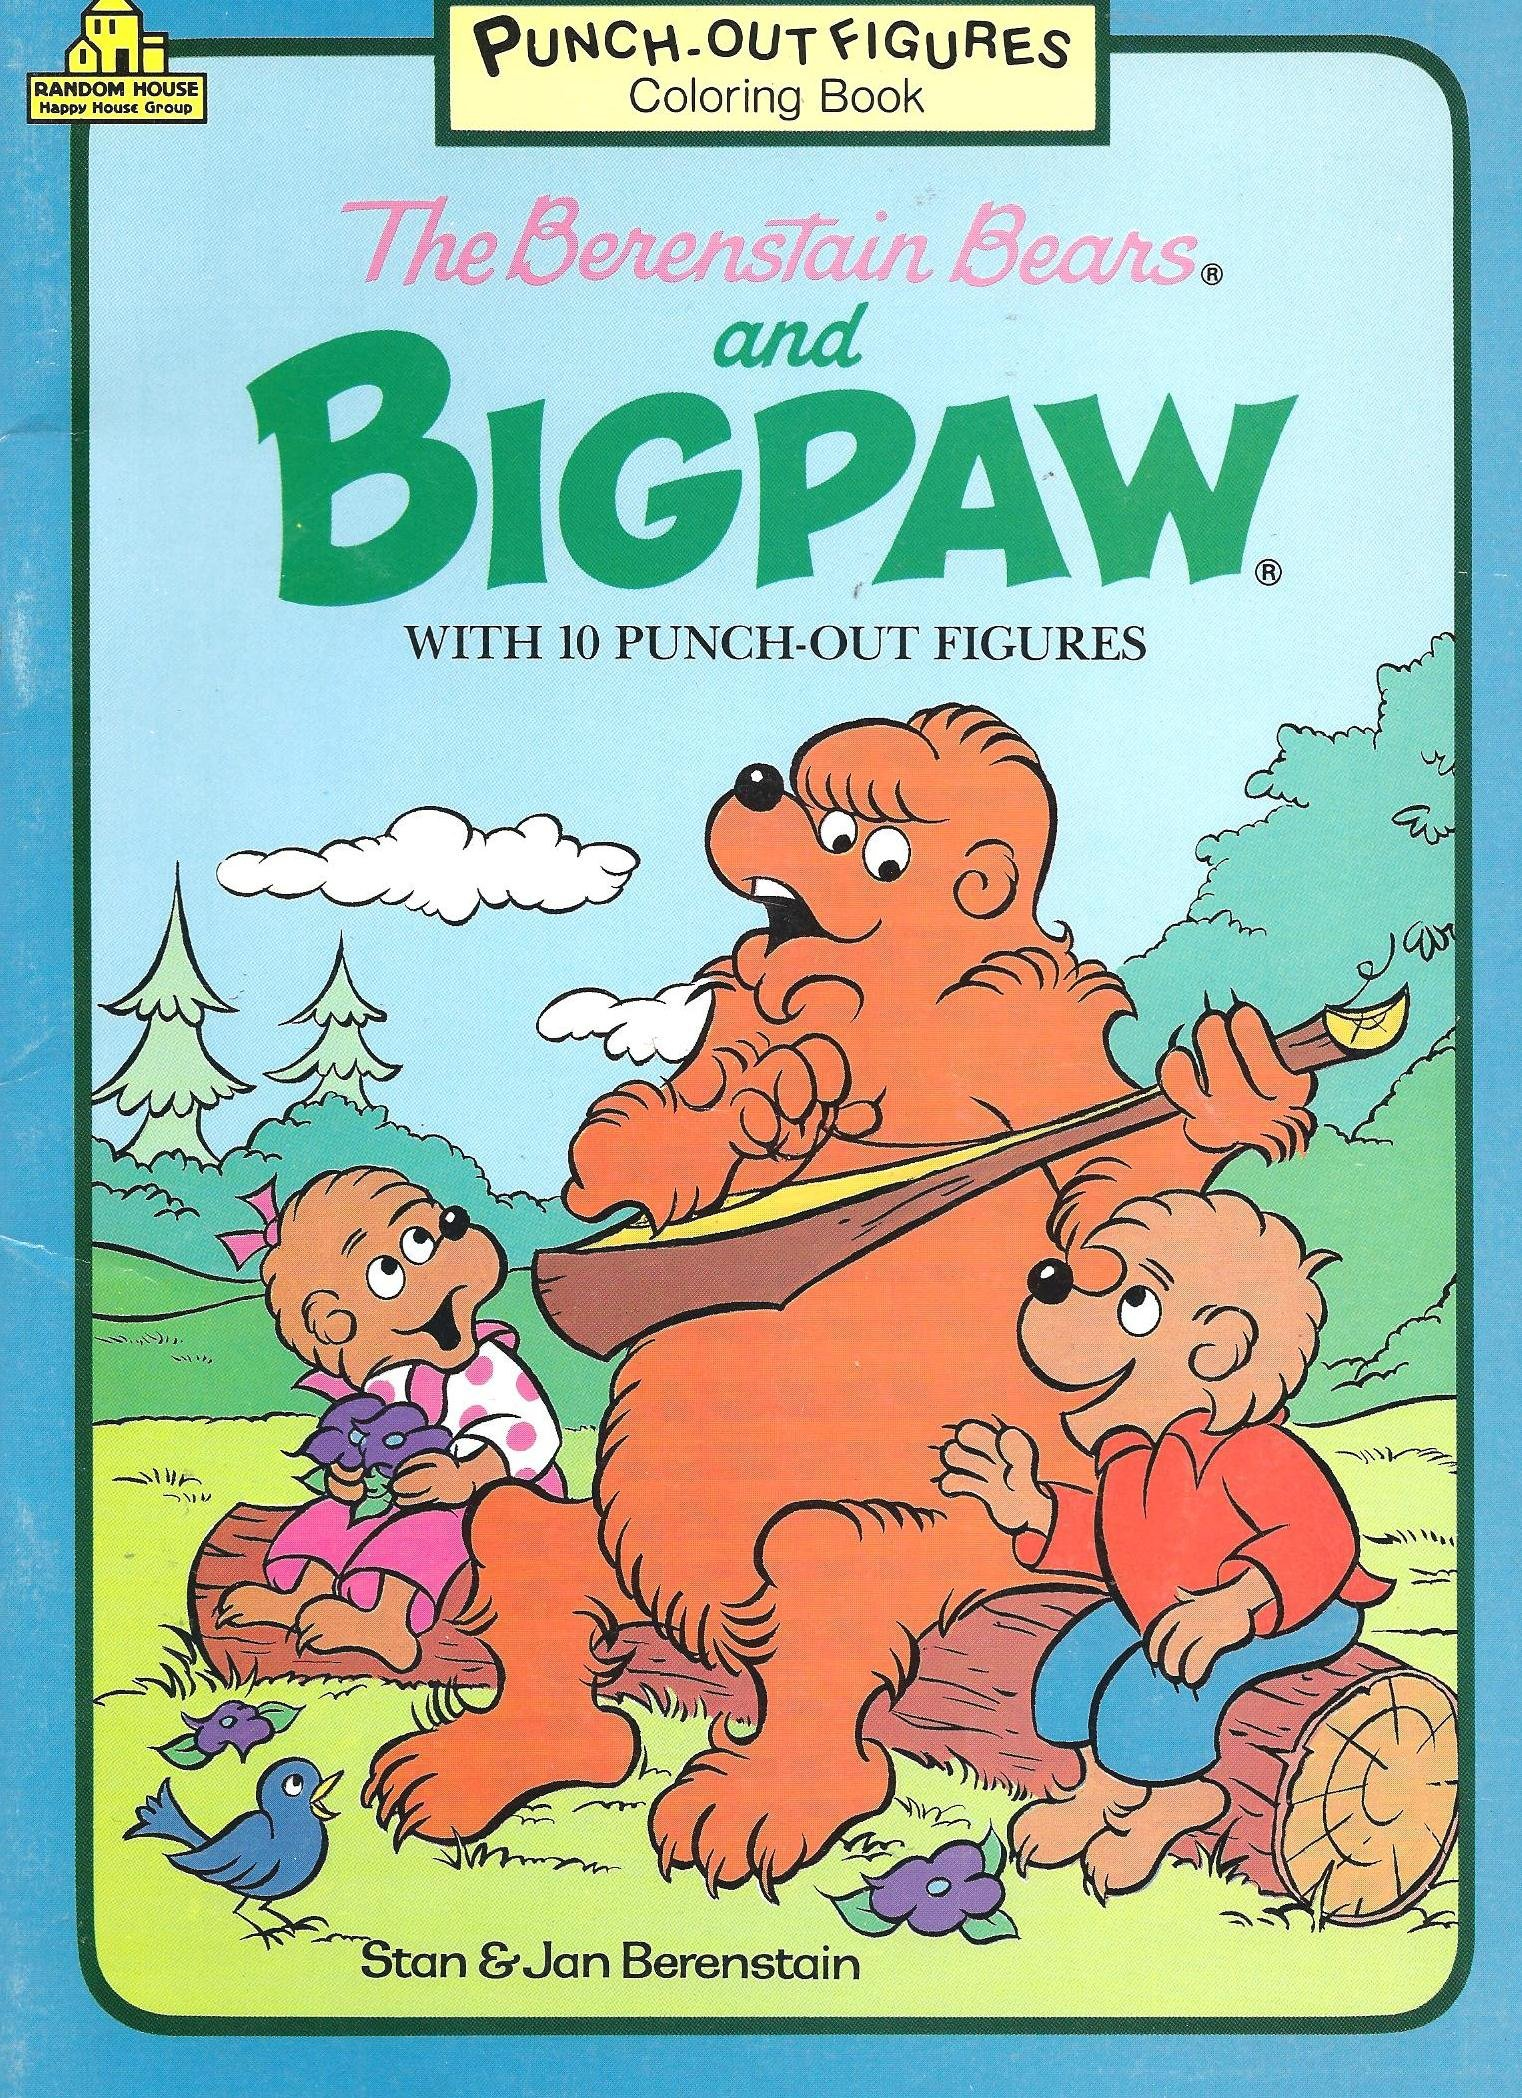 the berenstain bears and big paw coloring book with 10 punch out figures amazoncom books - Berenstain Bears Coloring Book